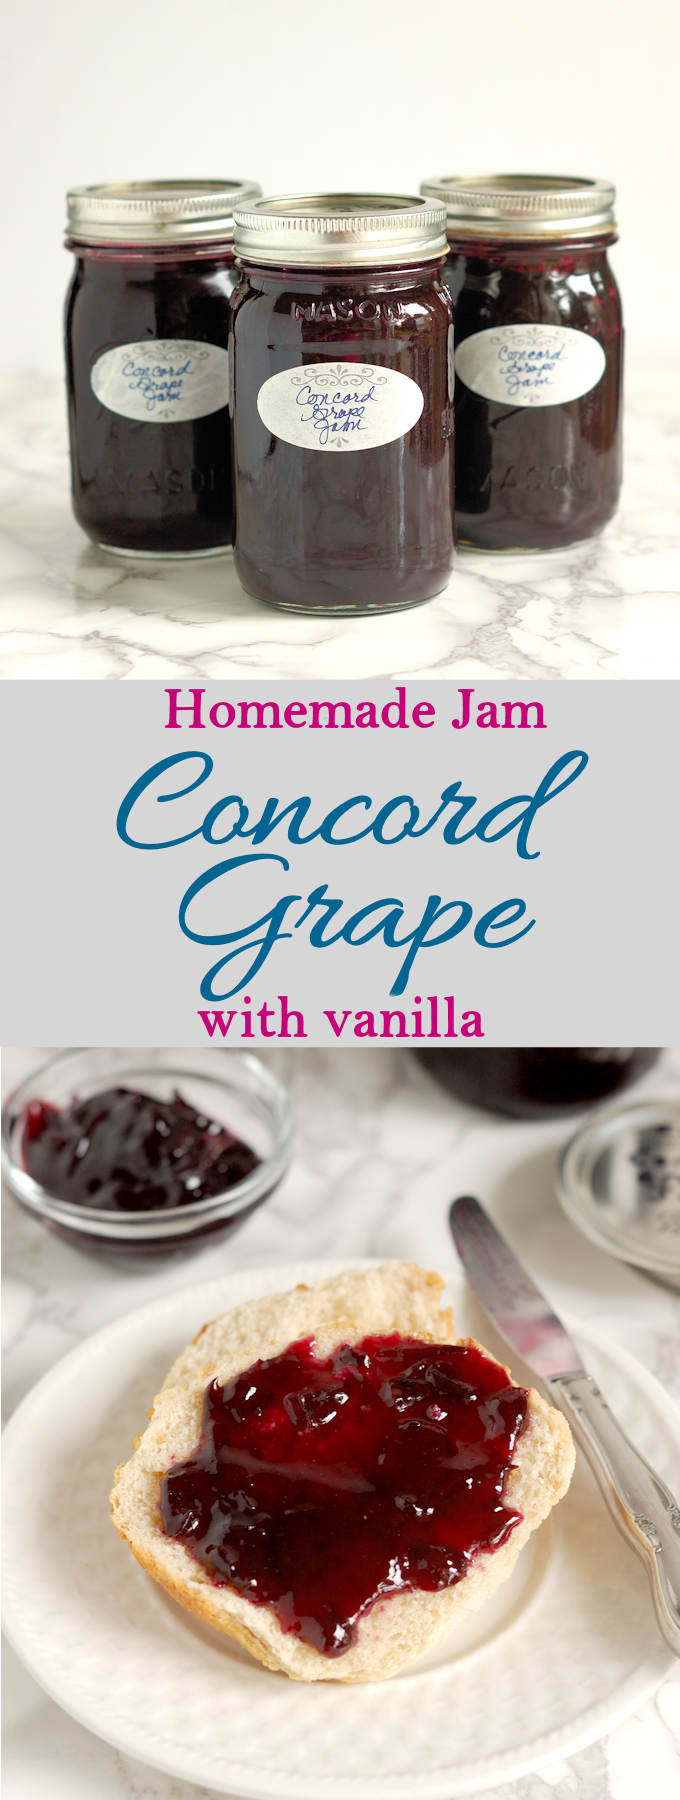 Home Canning is fun, easy and economical. Make Concord Grape Jam with Vanilla when fresh grapes are in season. Easy to follow recipe with lots of how-to photos